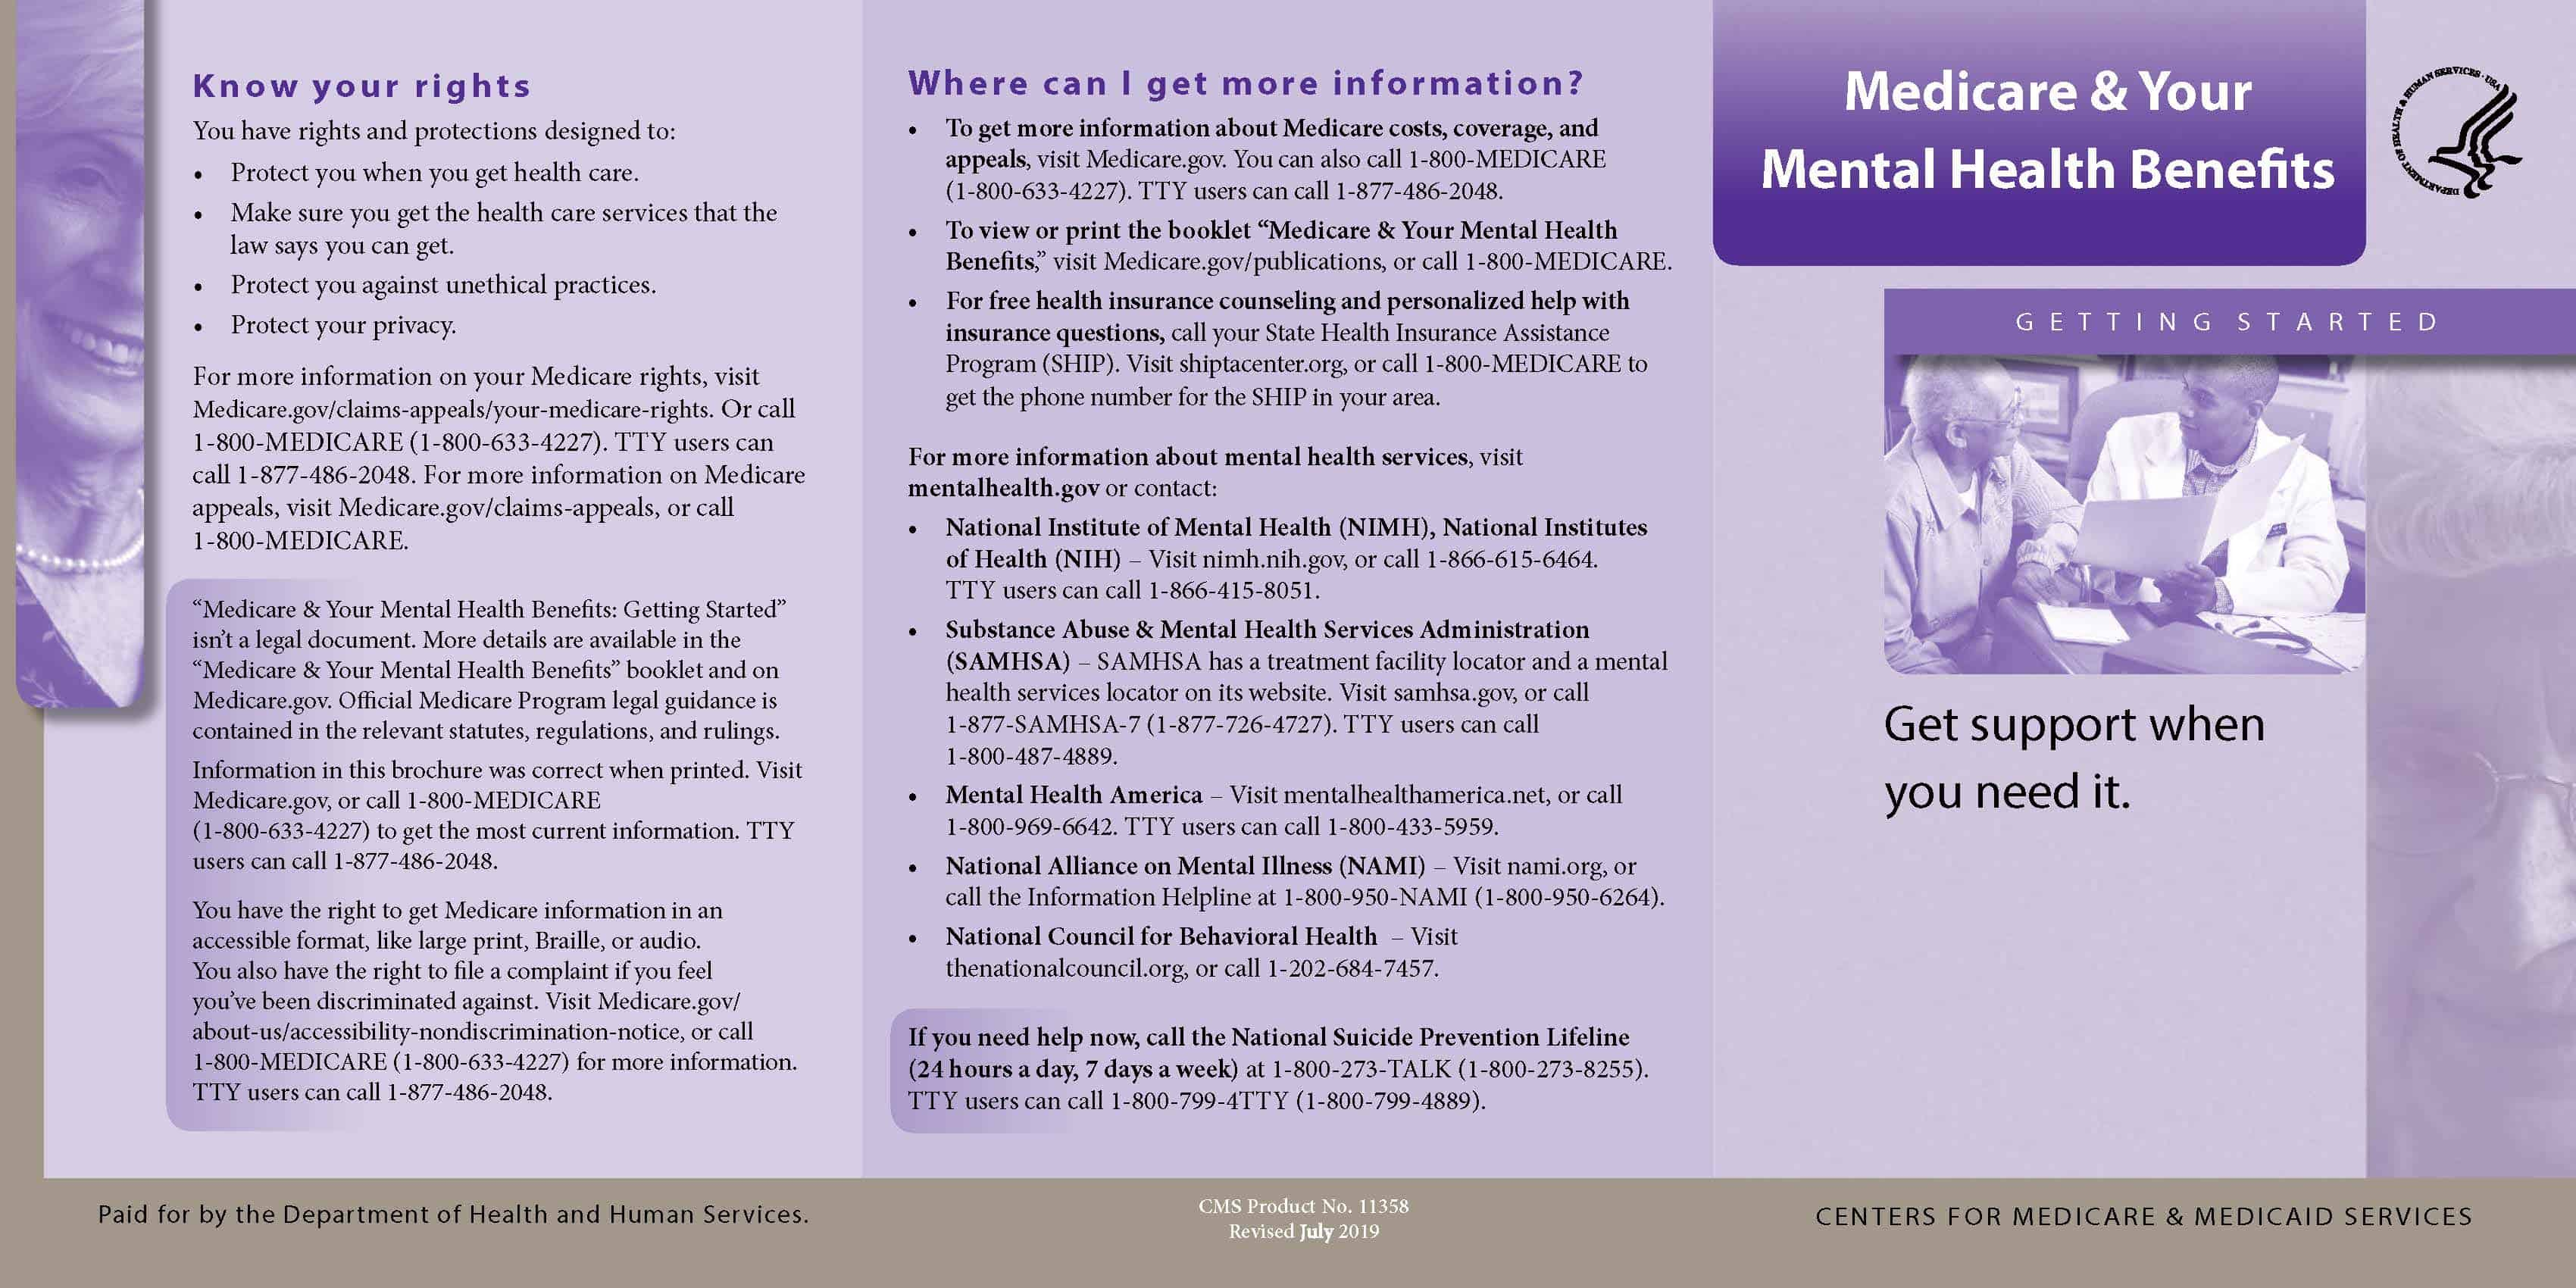 11358-medicare-mental-health-getting-started_Page_1